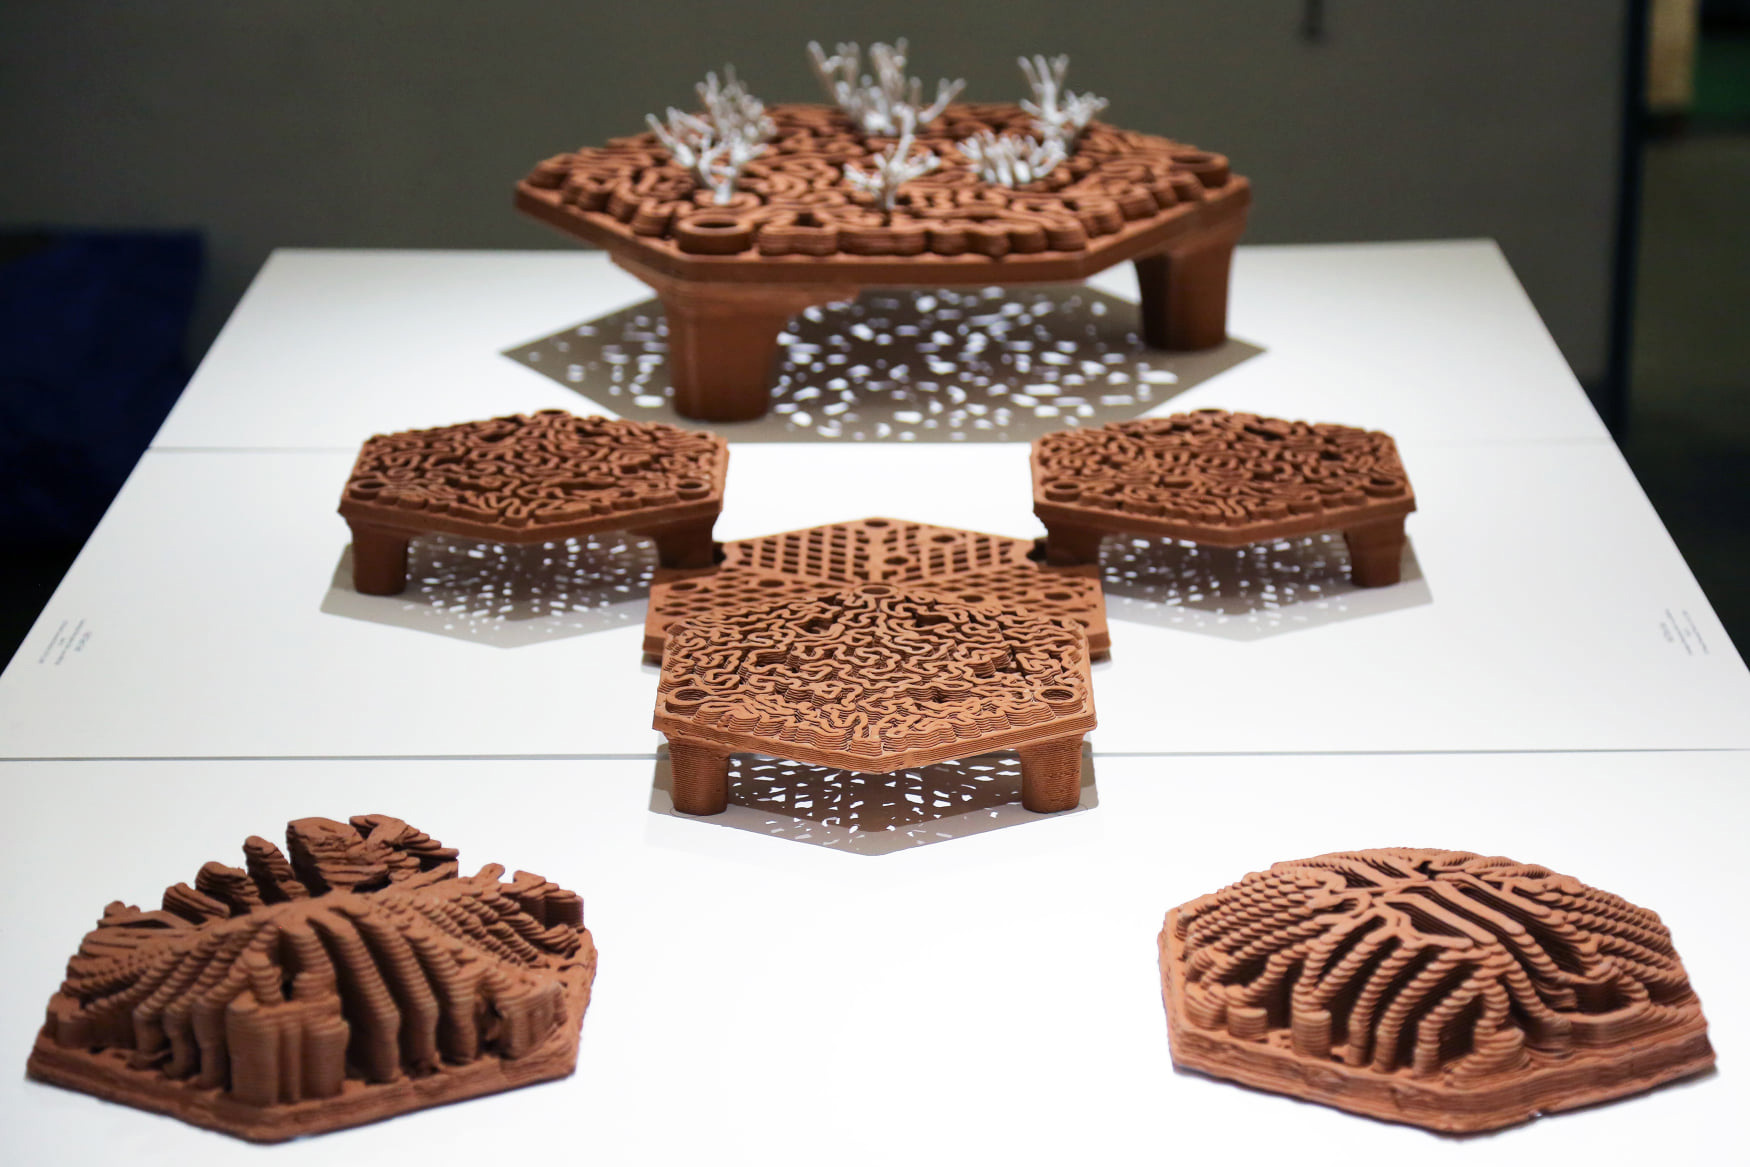 Christian J. Lange, autobryks3D, 3d printing, robotic fabrication, Reef Tiles, coral reef, artificial coral reef, coral restoration, reef restoration Hong Kong, terracotta architecture, 3D printed coral